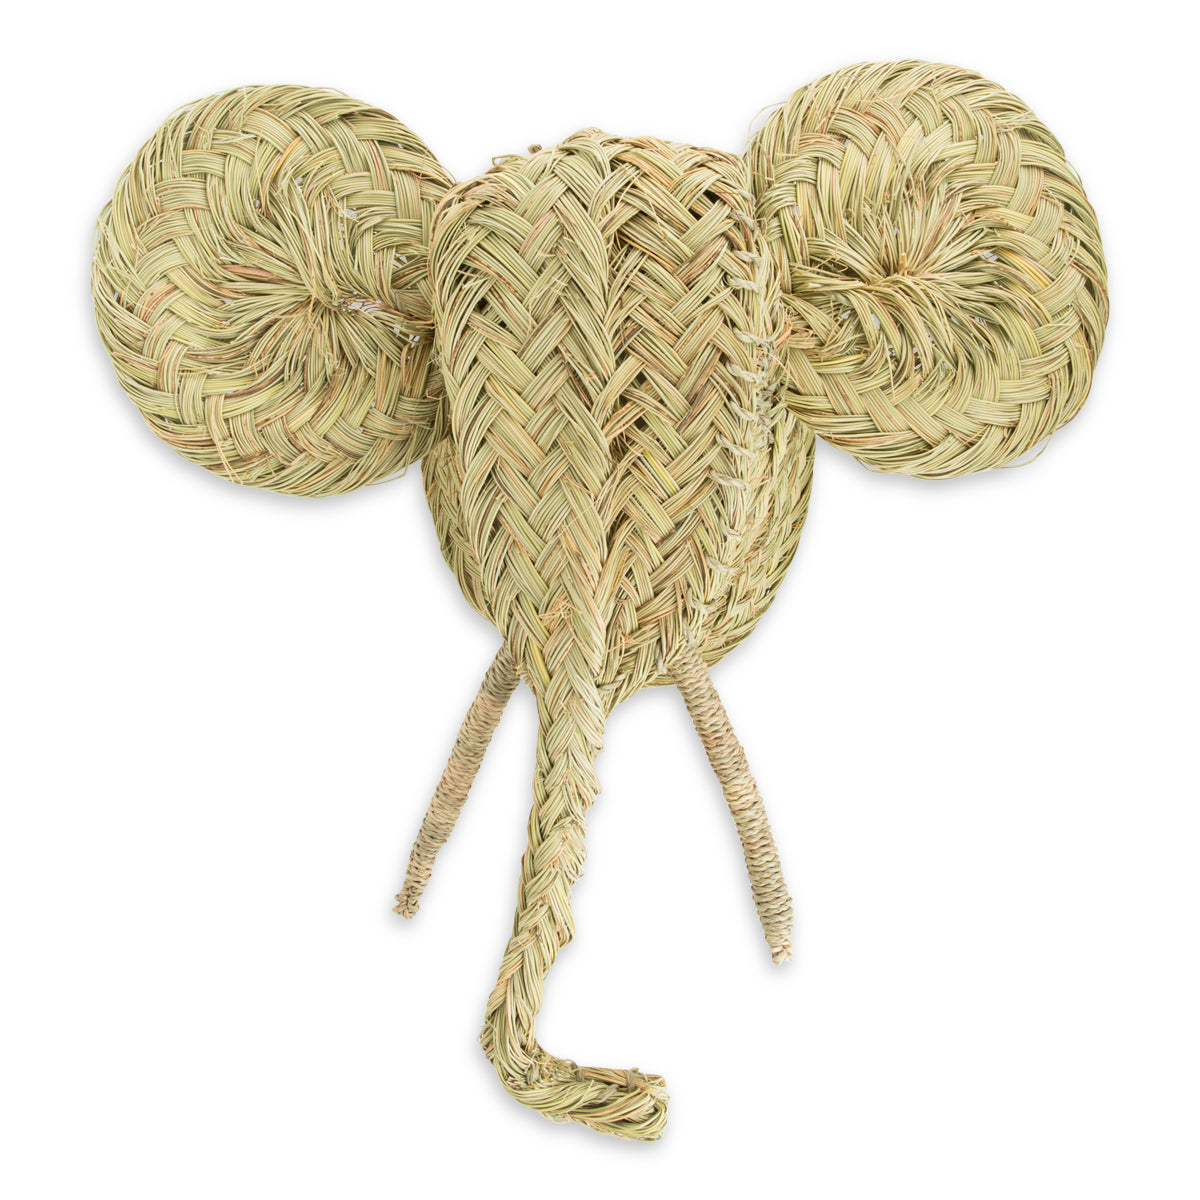 Moroccan Straw Elephant Head